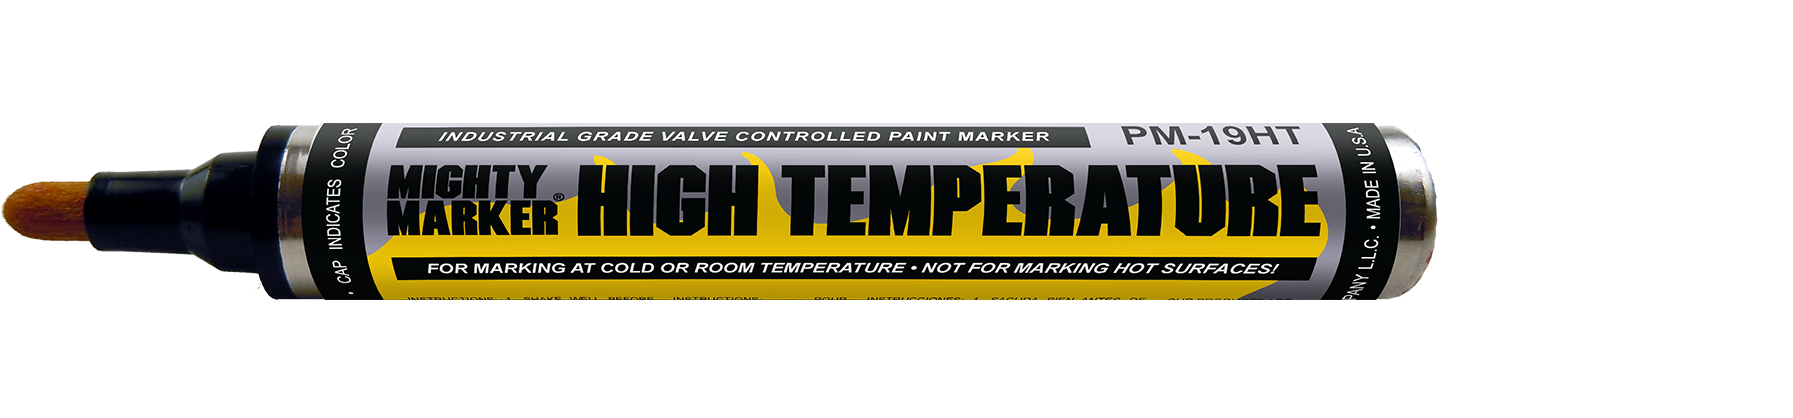 Mighty Marker High Temperature